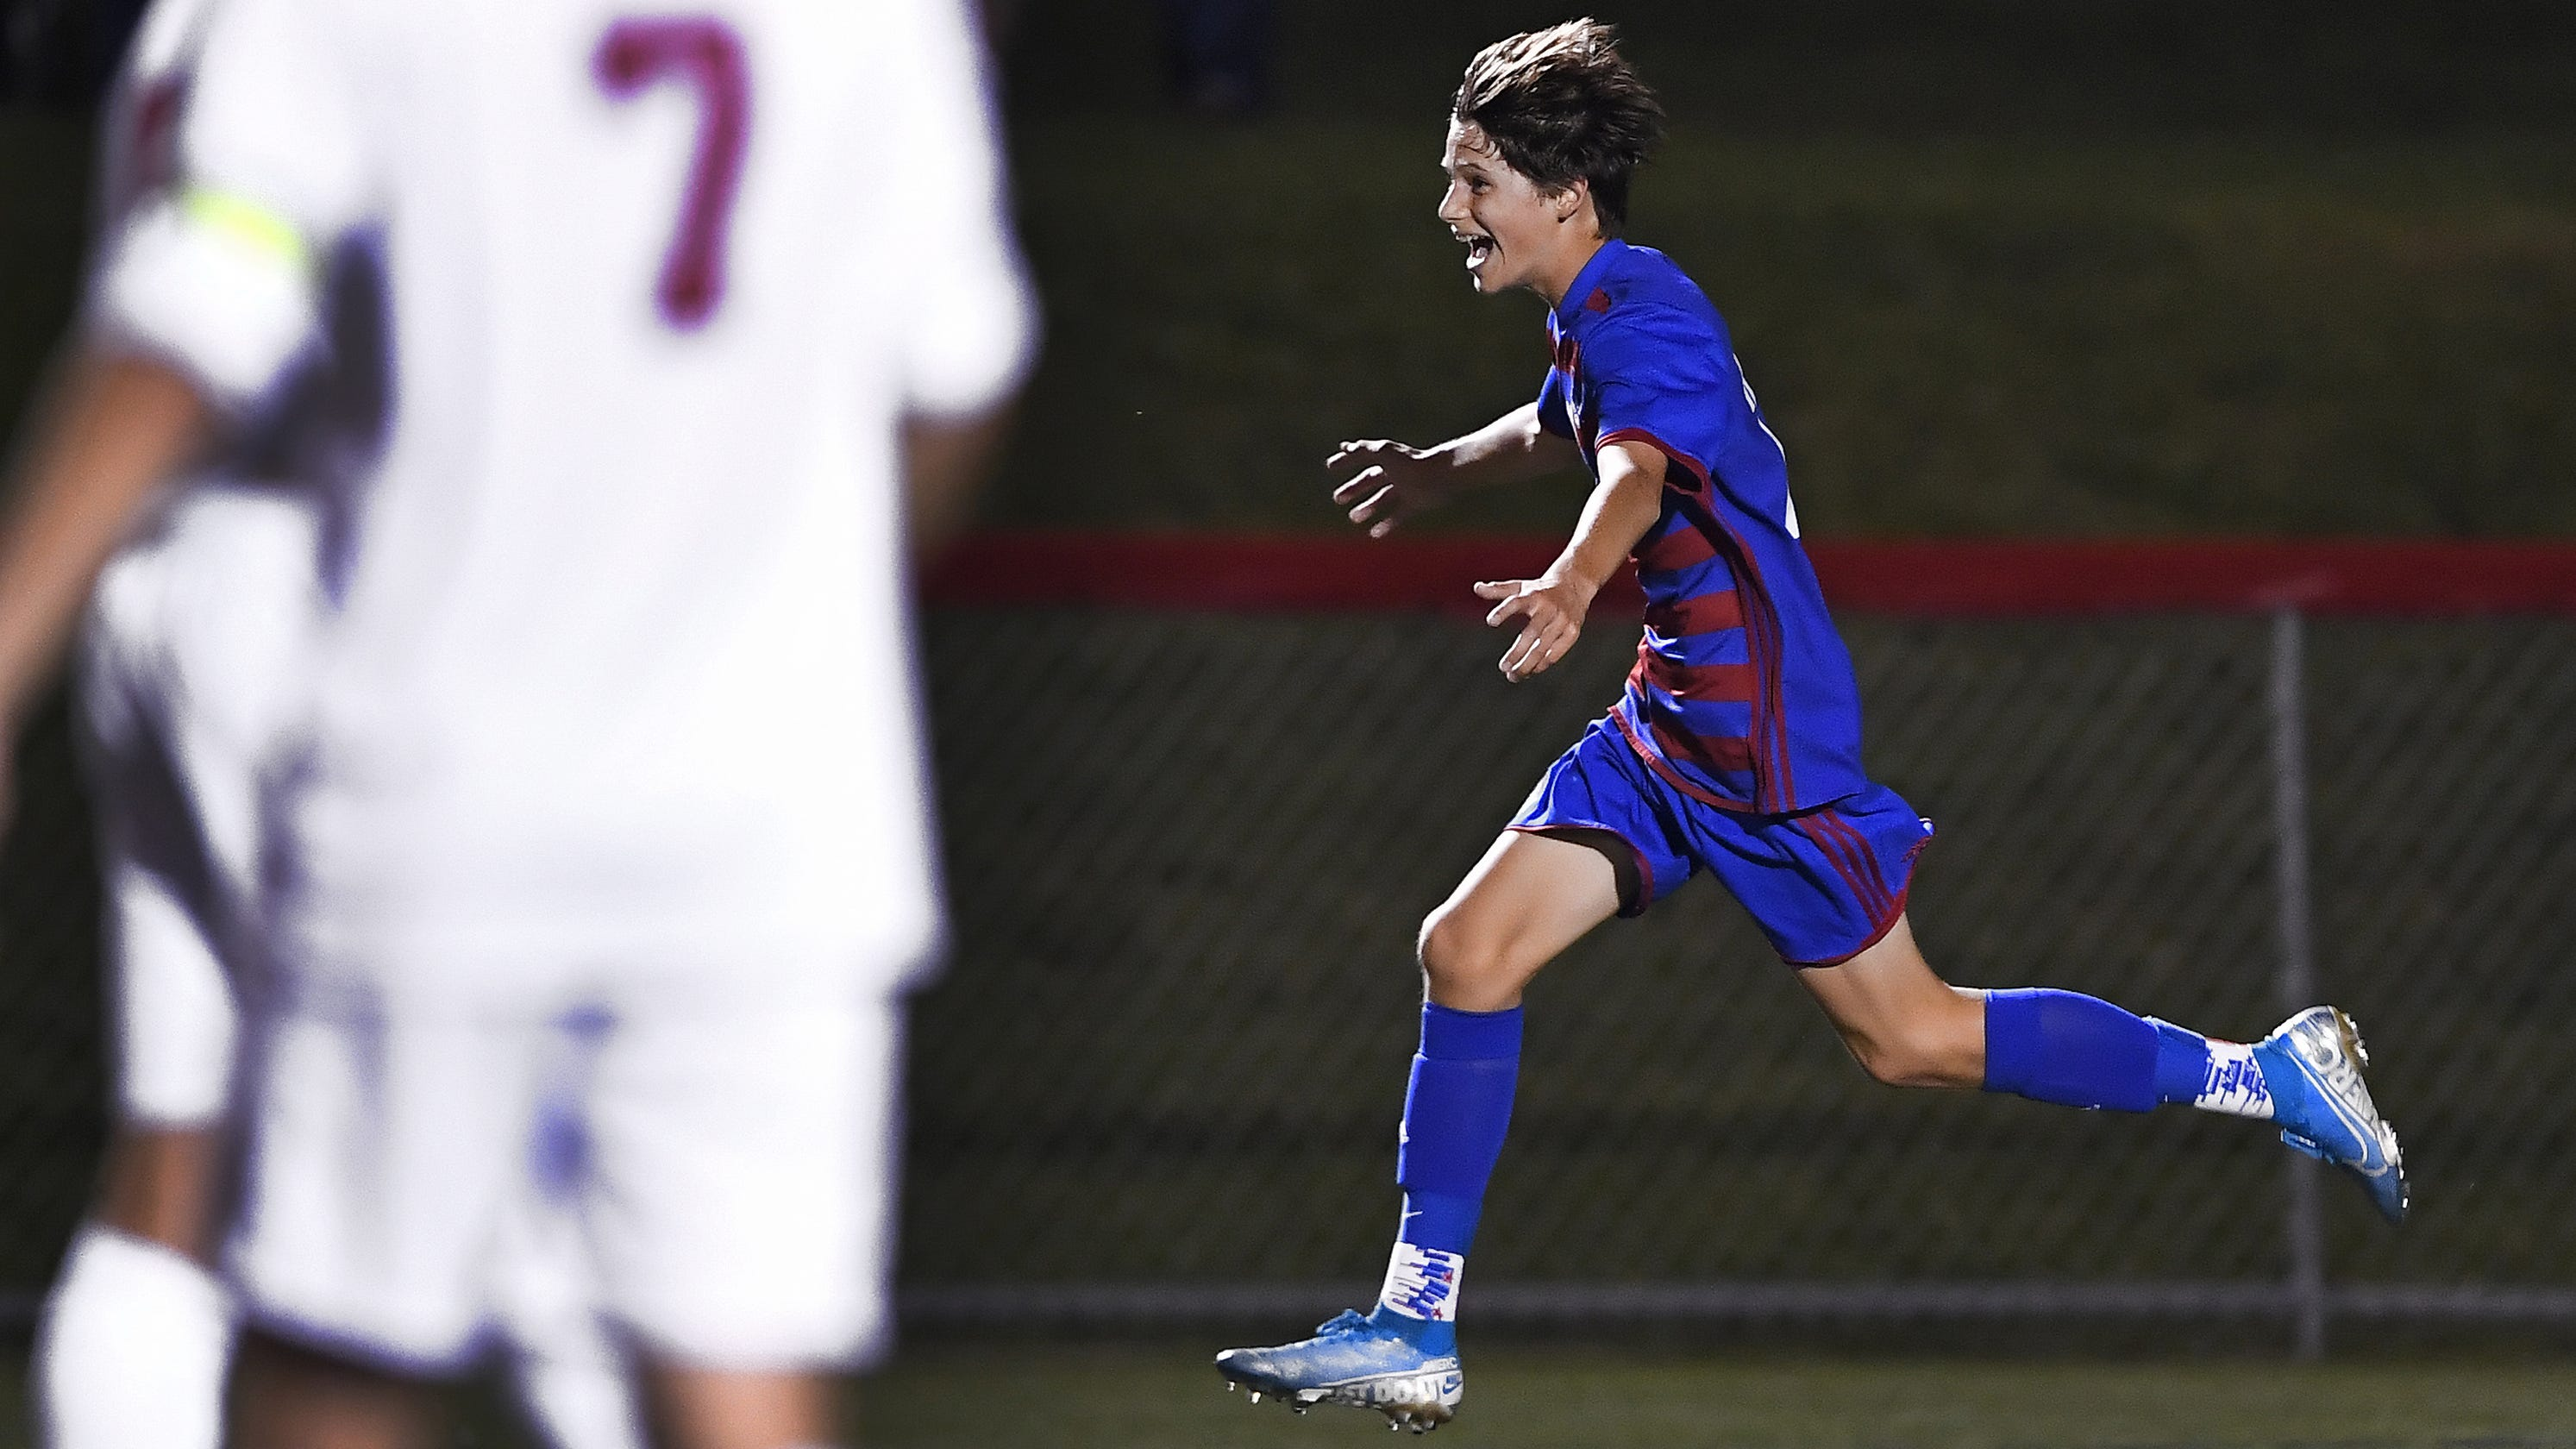 Section V boys soccer 2019: Sectional schedule, scores ...